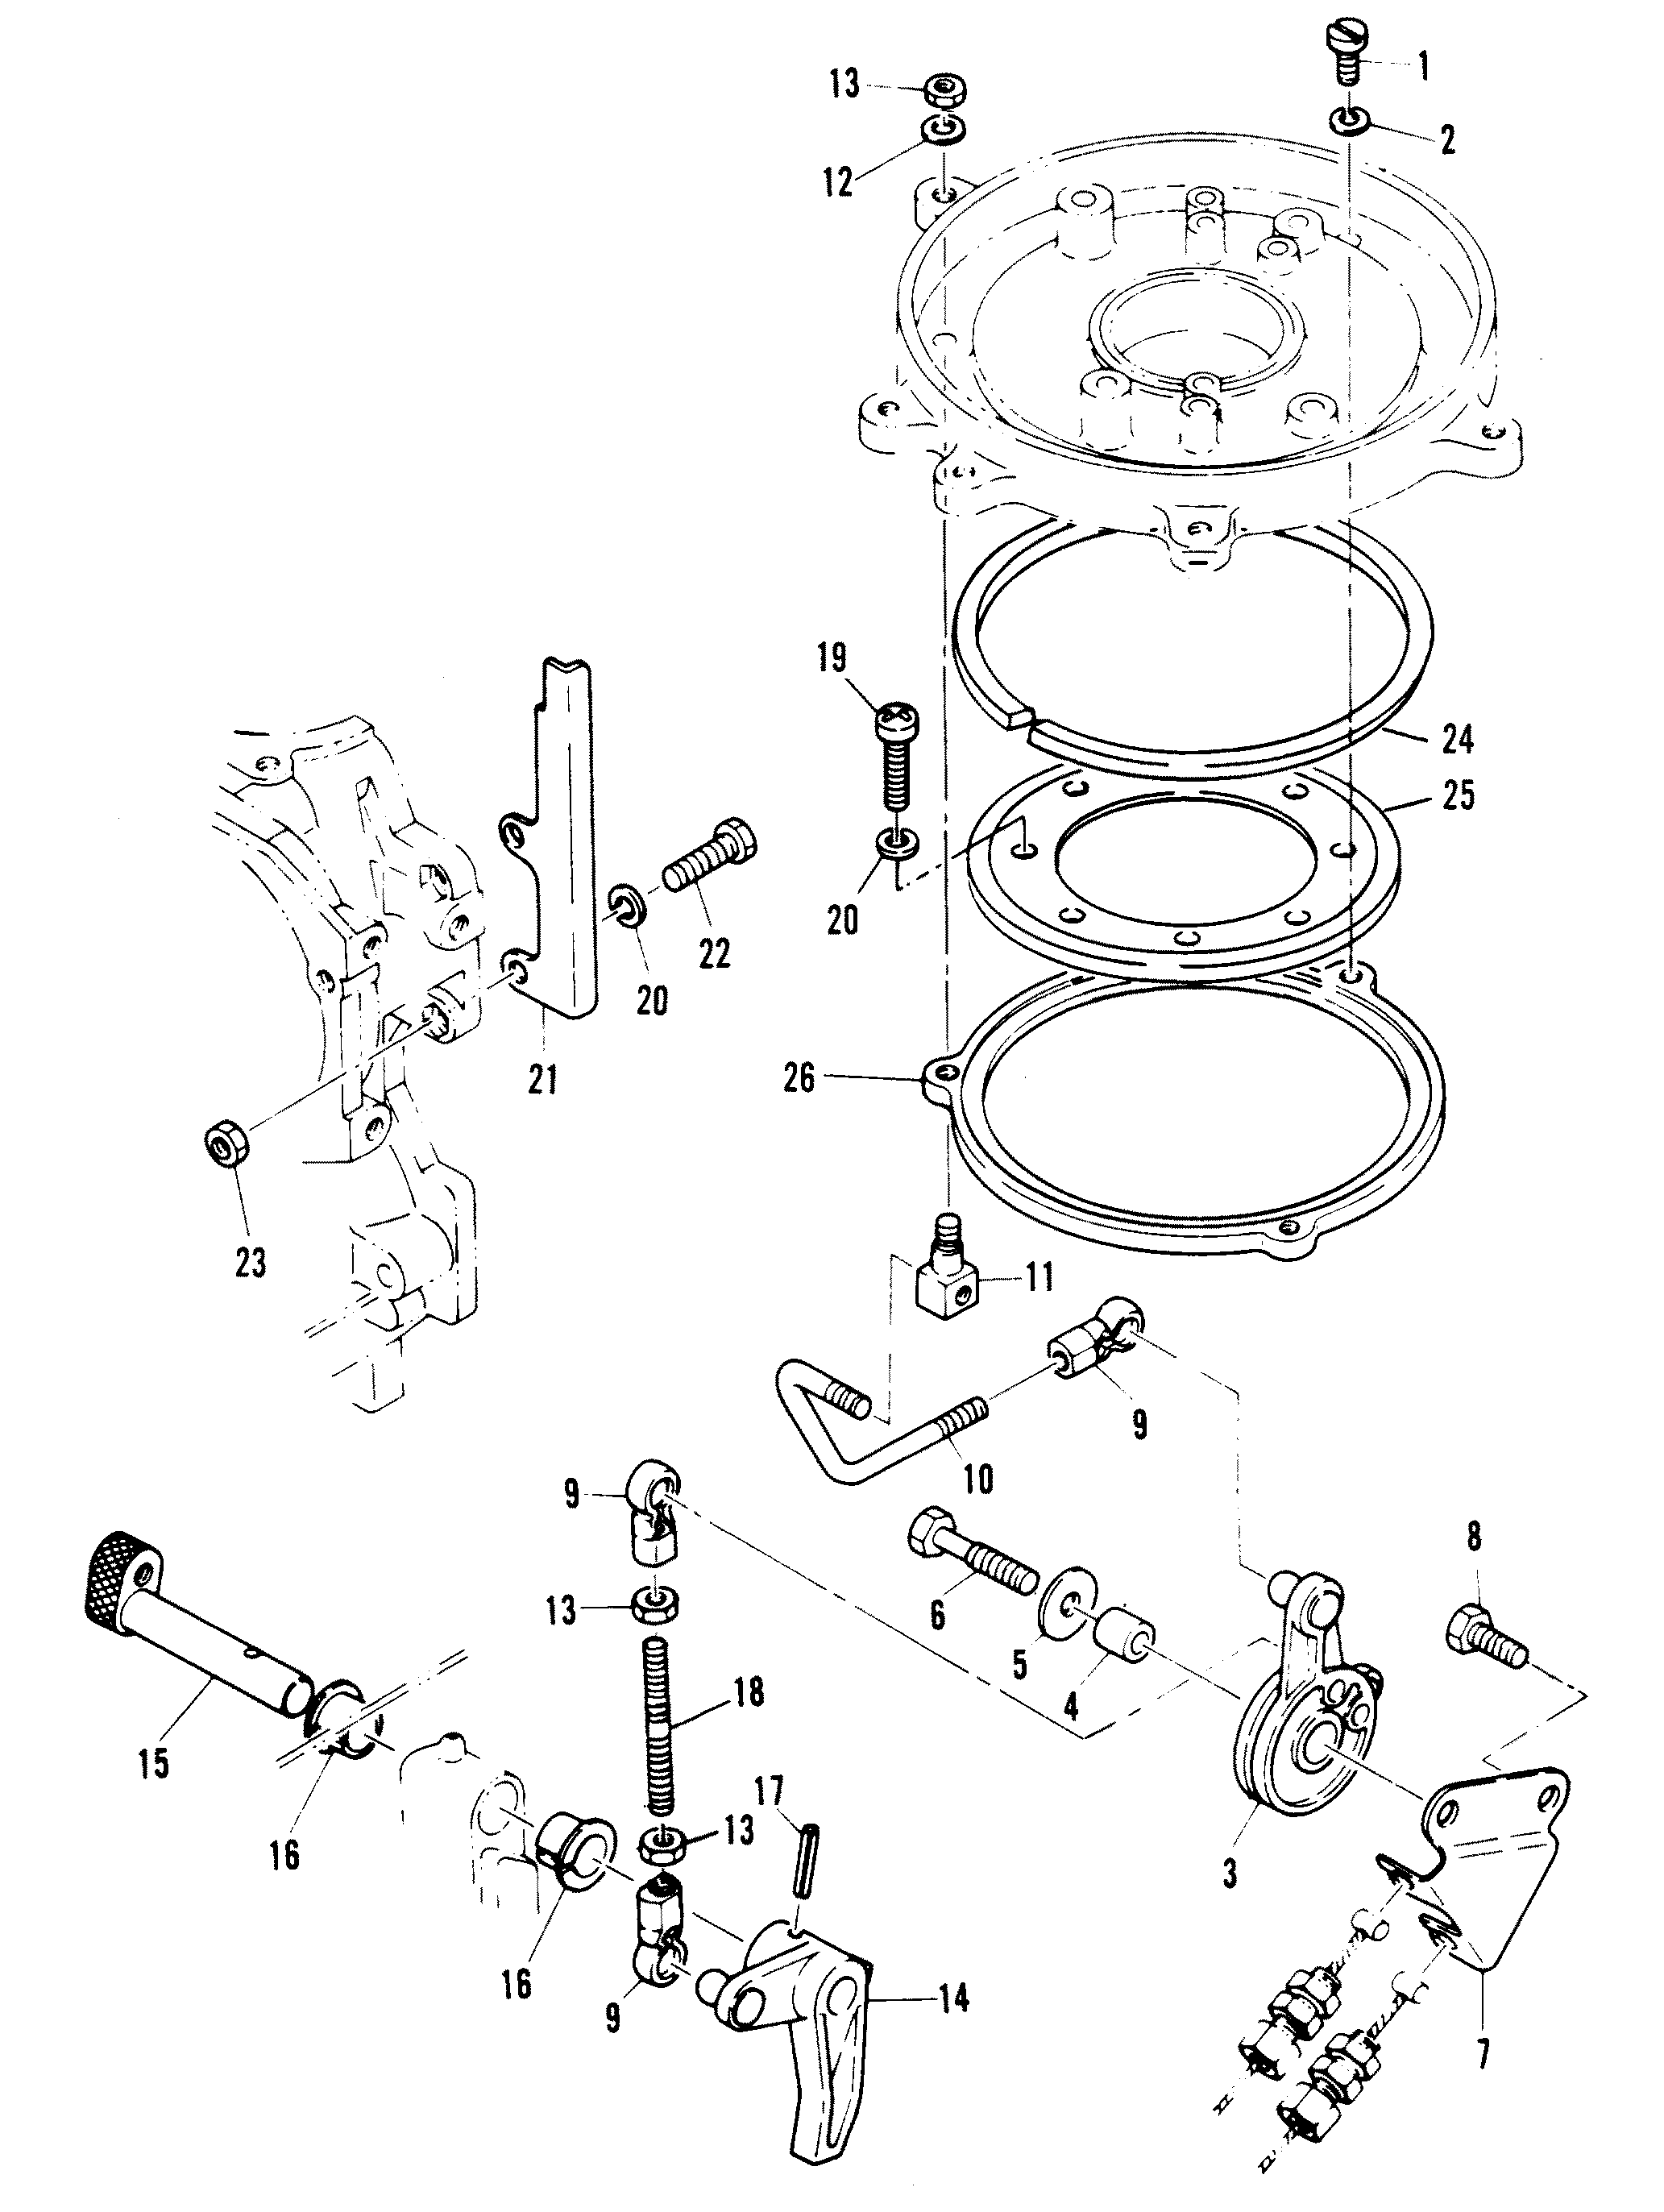 Mercury Verado Parts Diagram Cowling. Mercury. Auto Wiring